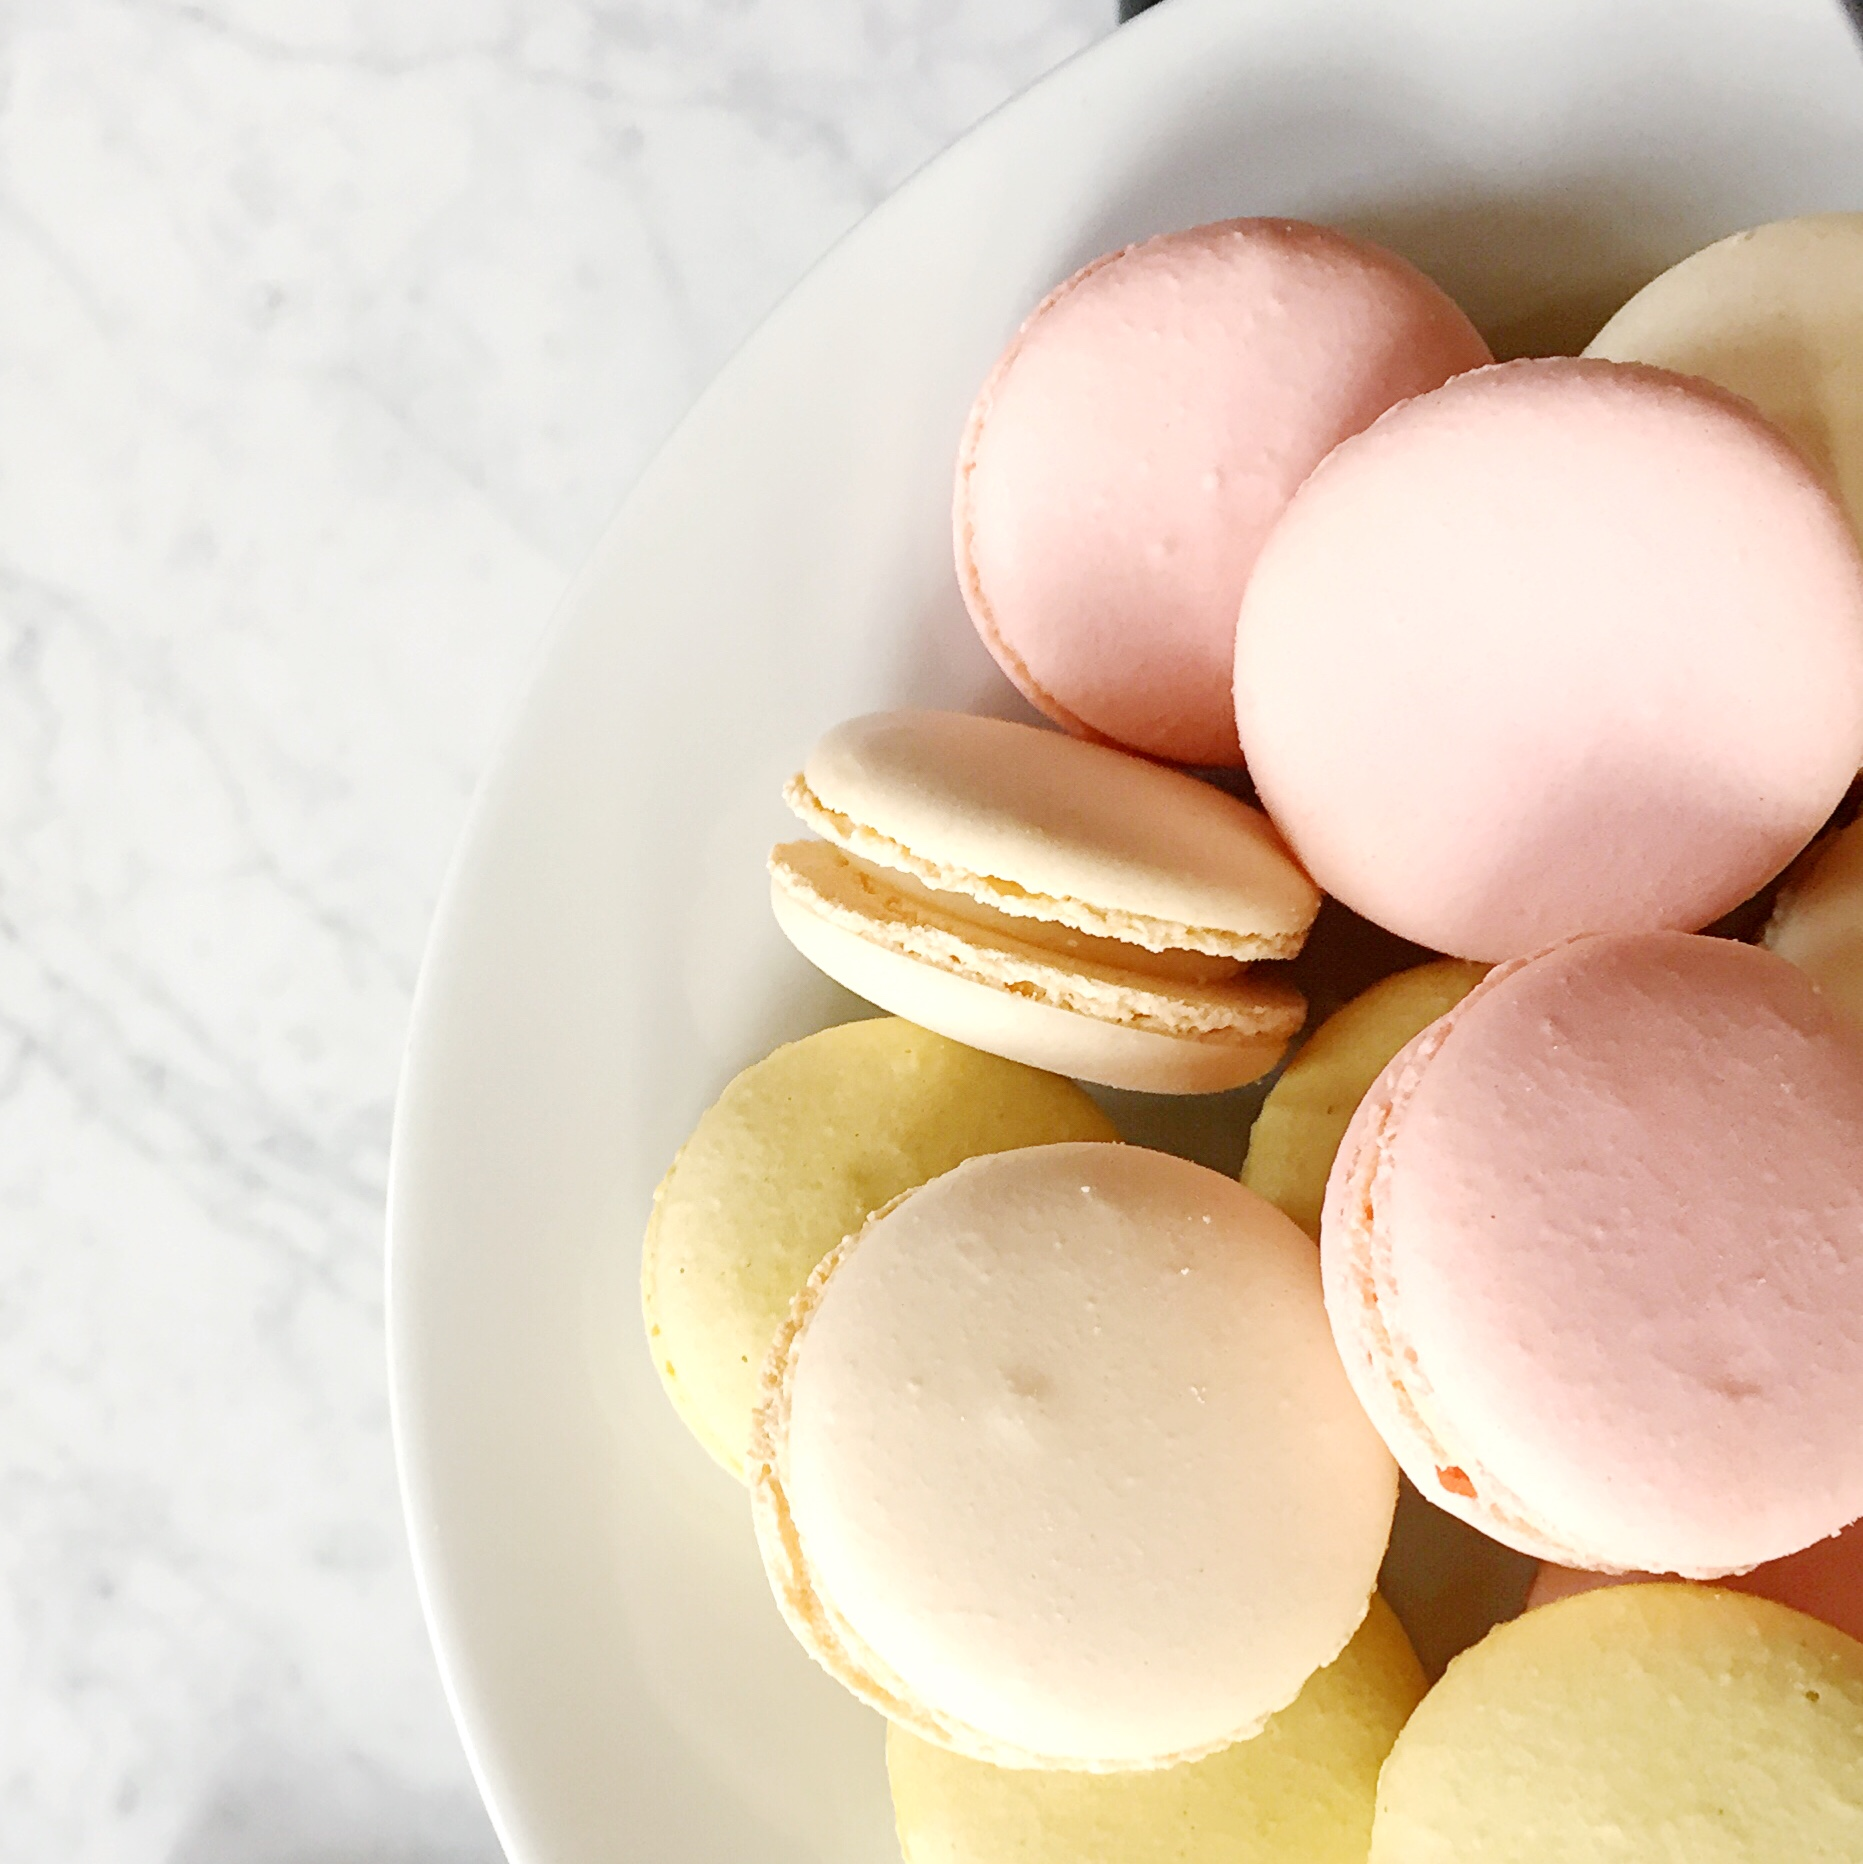 Colorful macarons on a plate